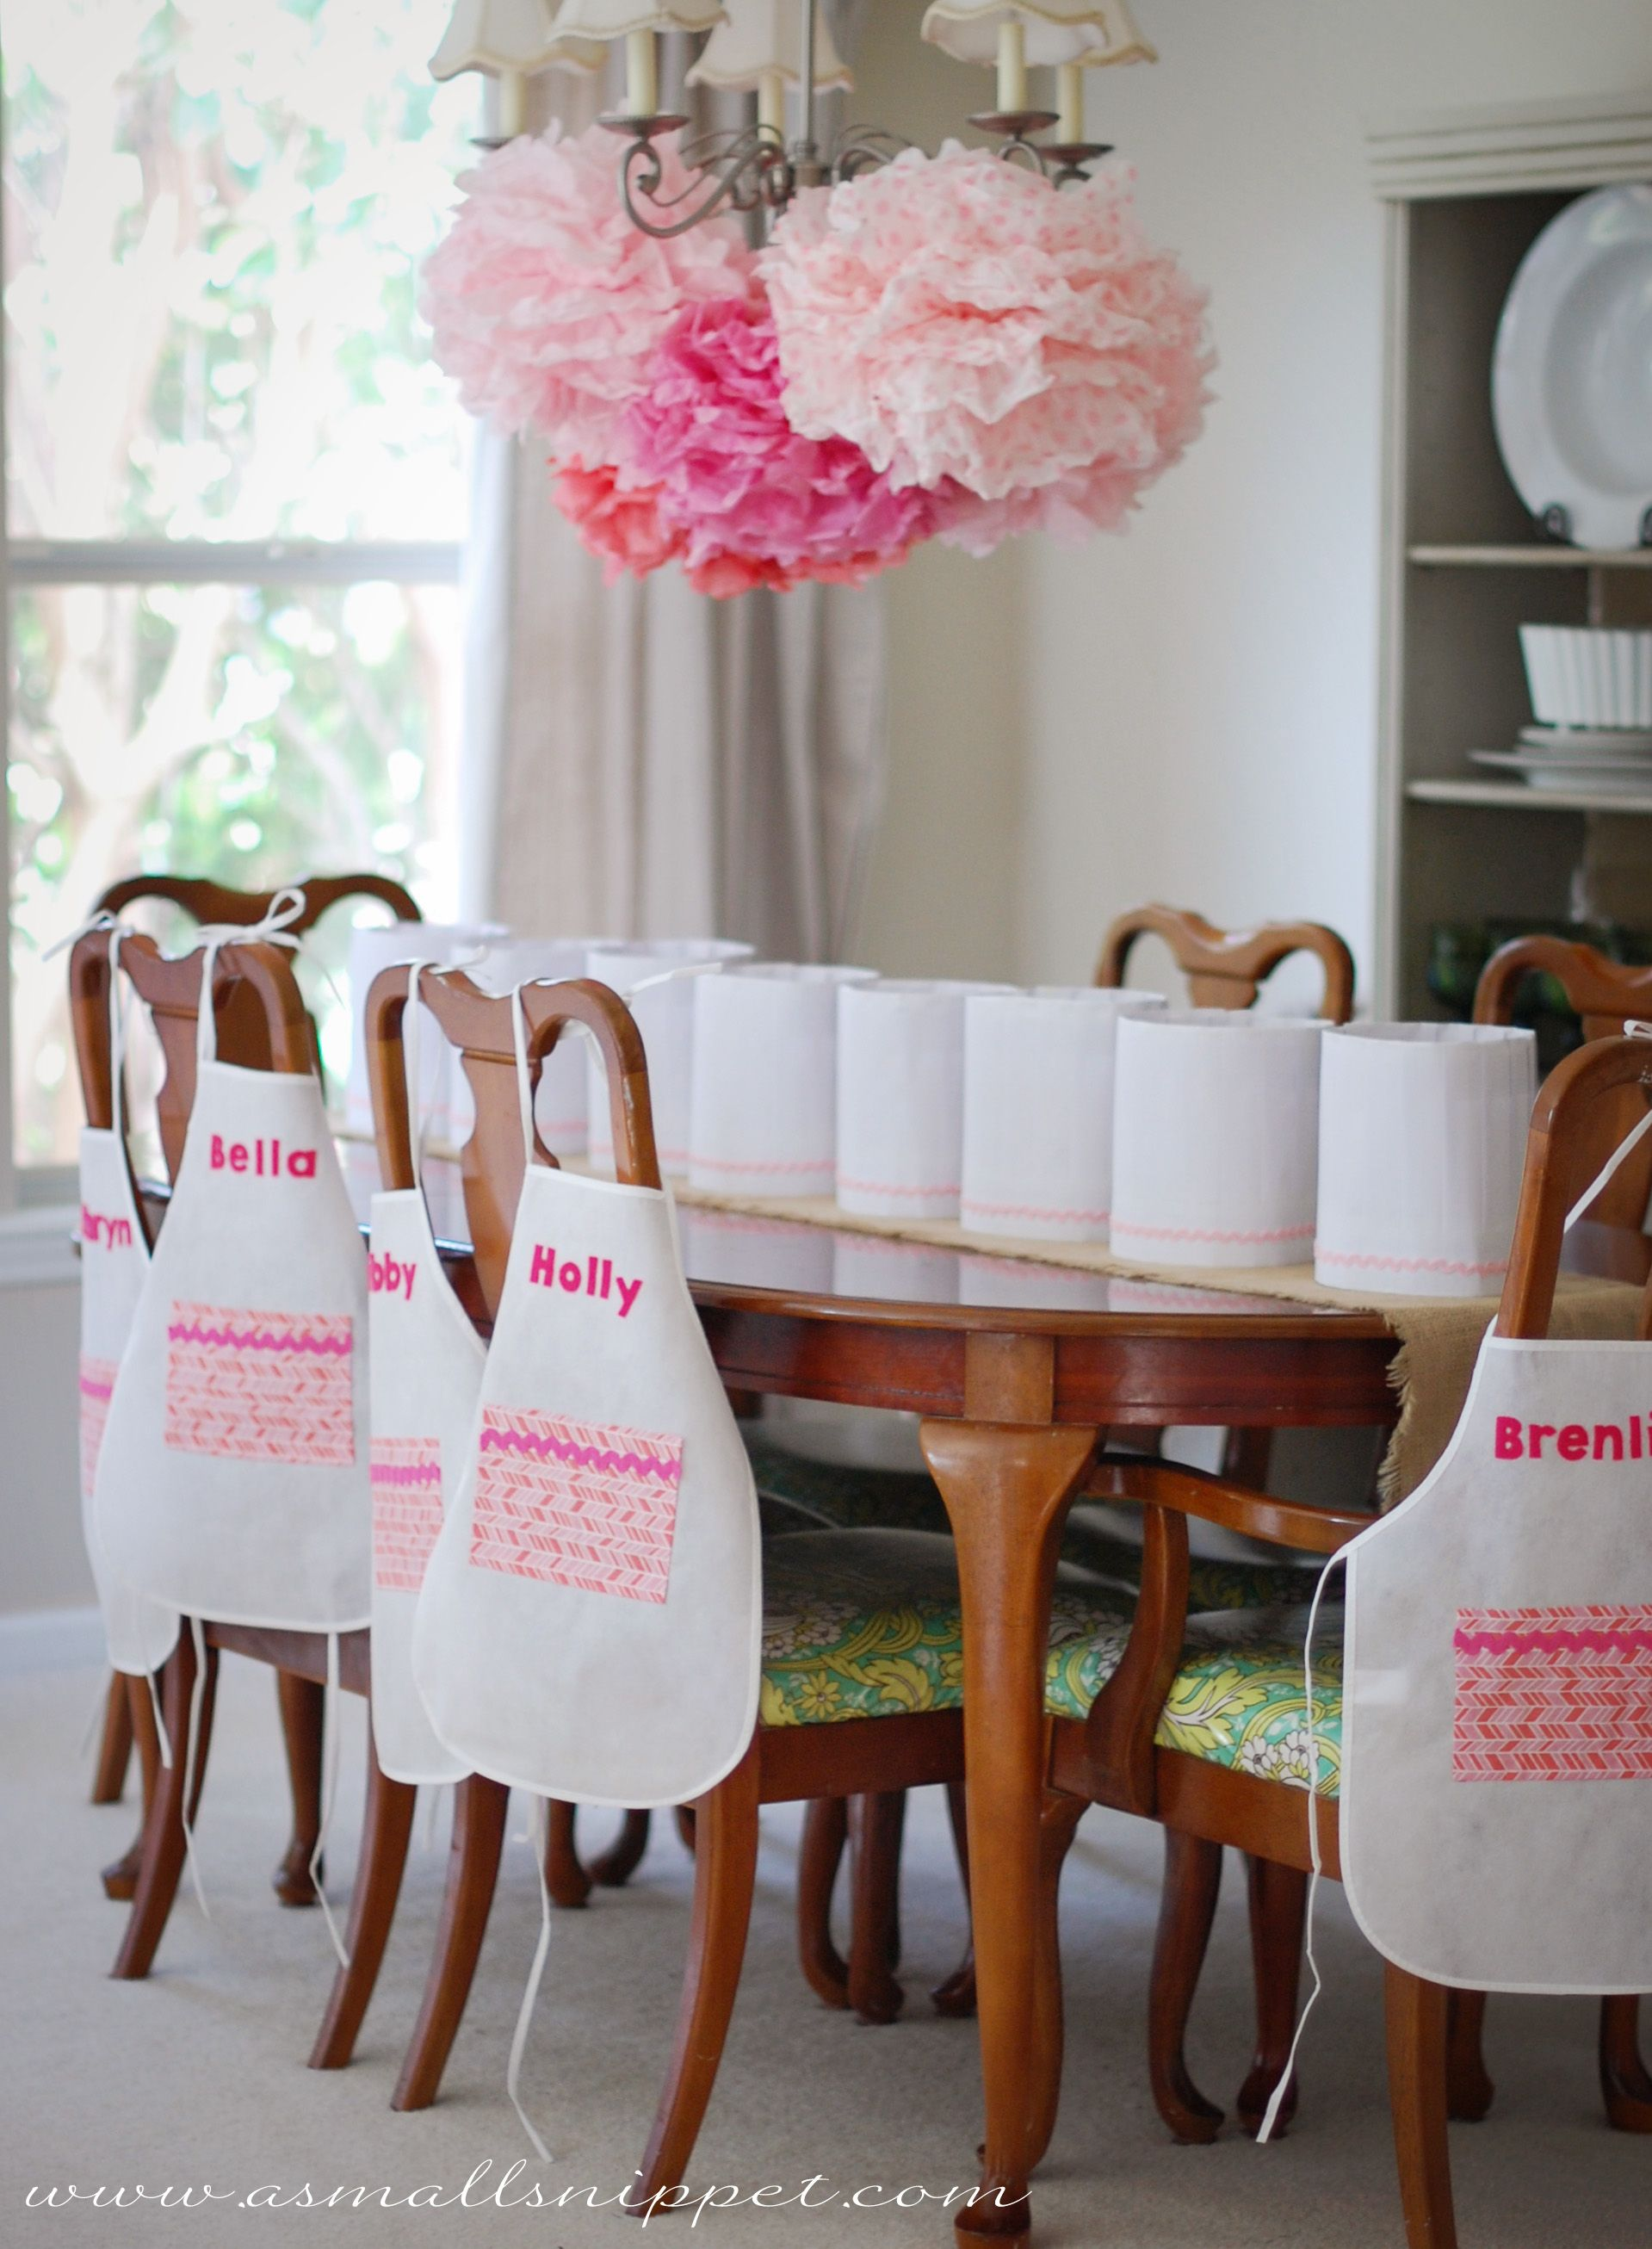 Girls cooking/baking party. Really cute tips on decor and easy cooking ideas for the kids!!